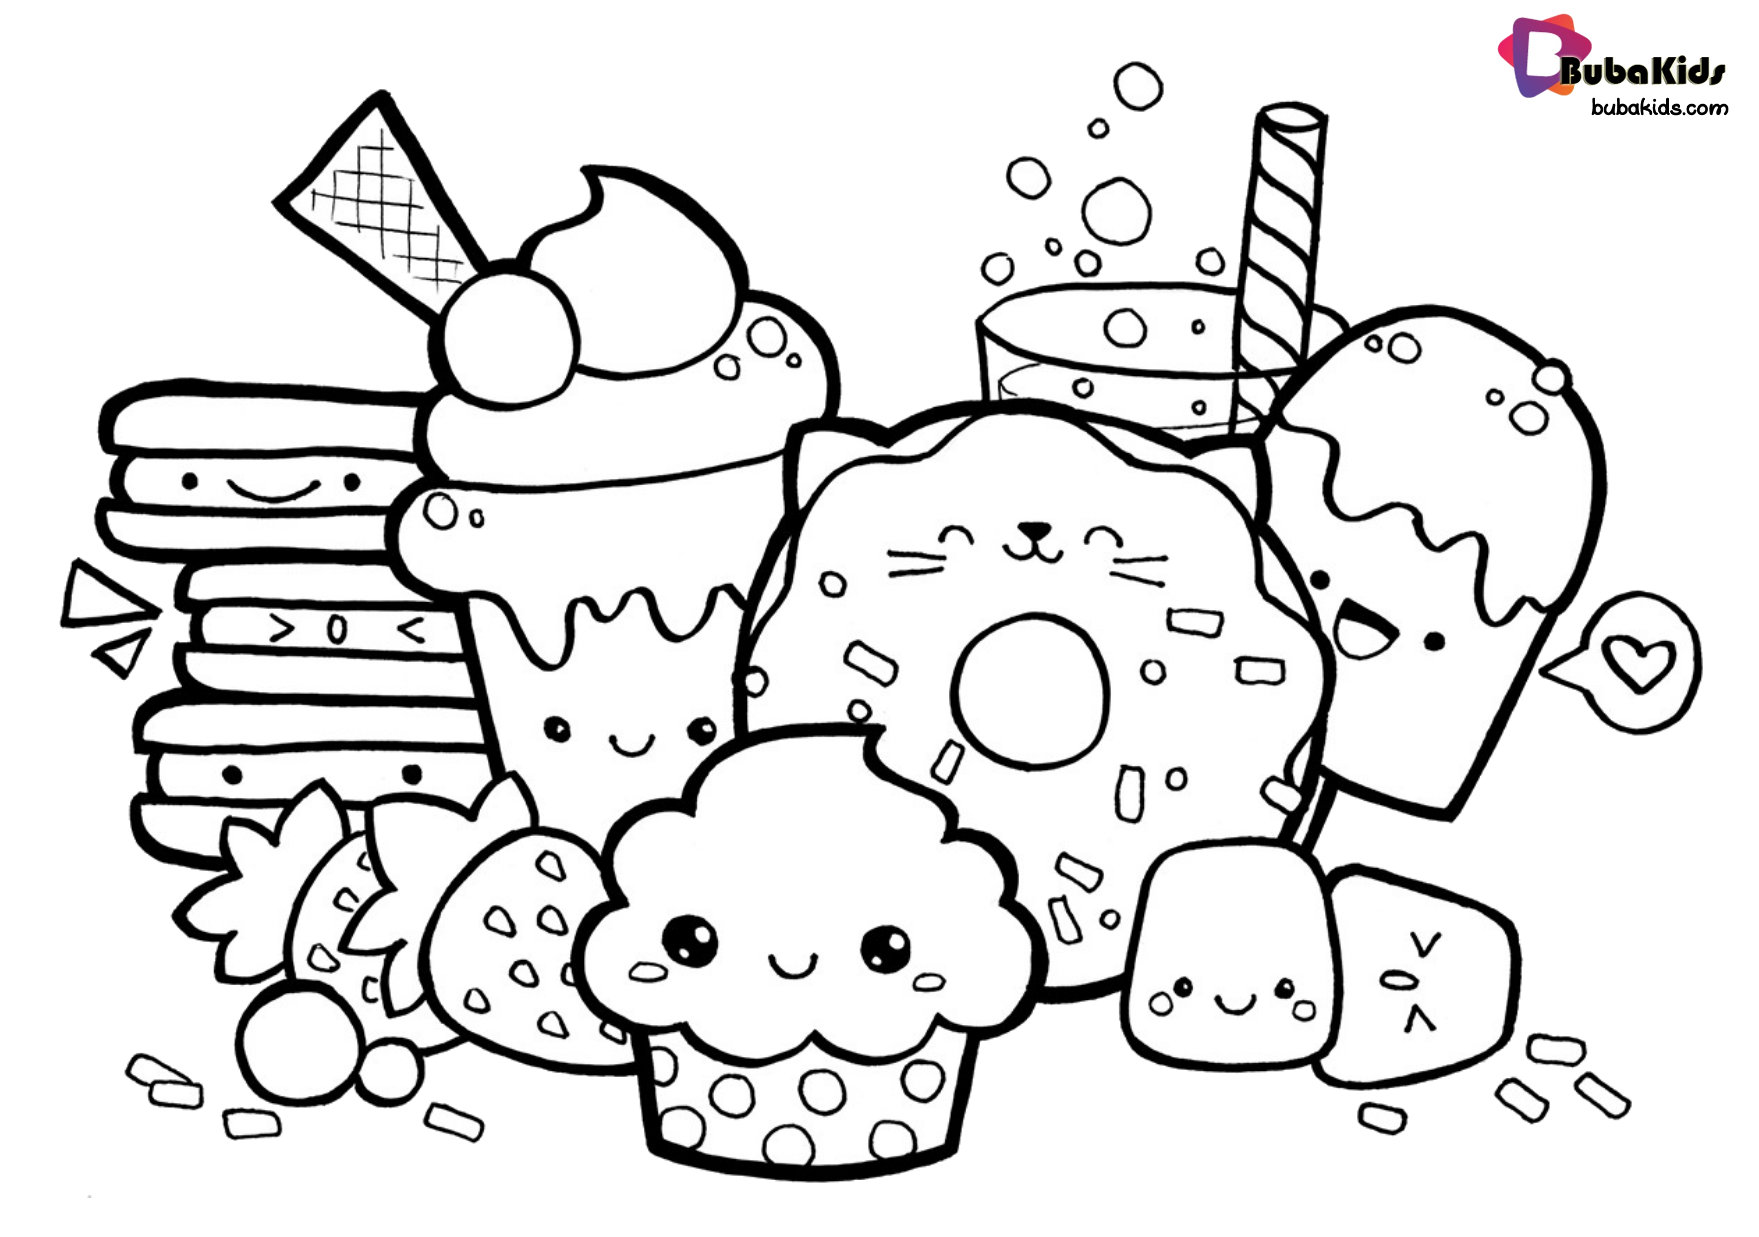 Pin By Christina Hendricks On Diner Cute Coloring Pages Food